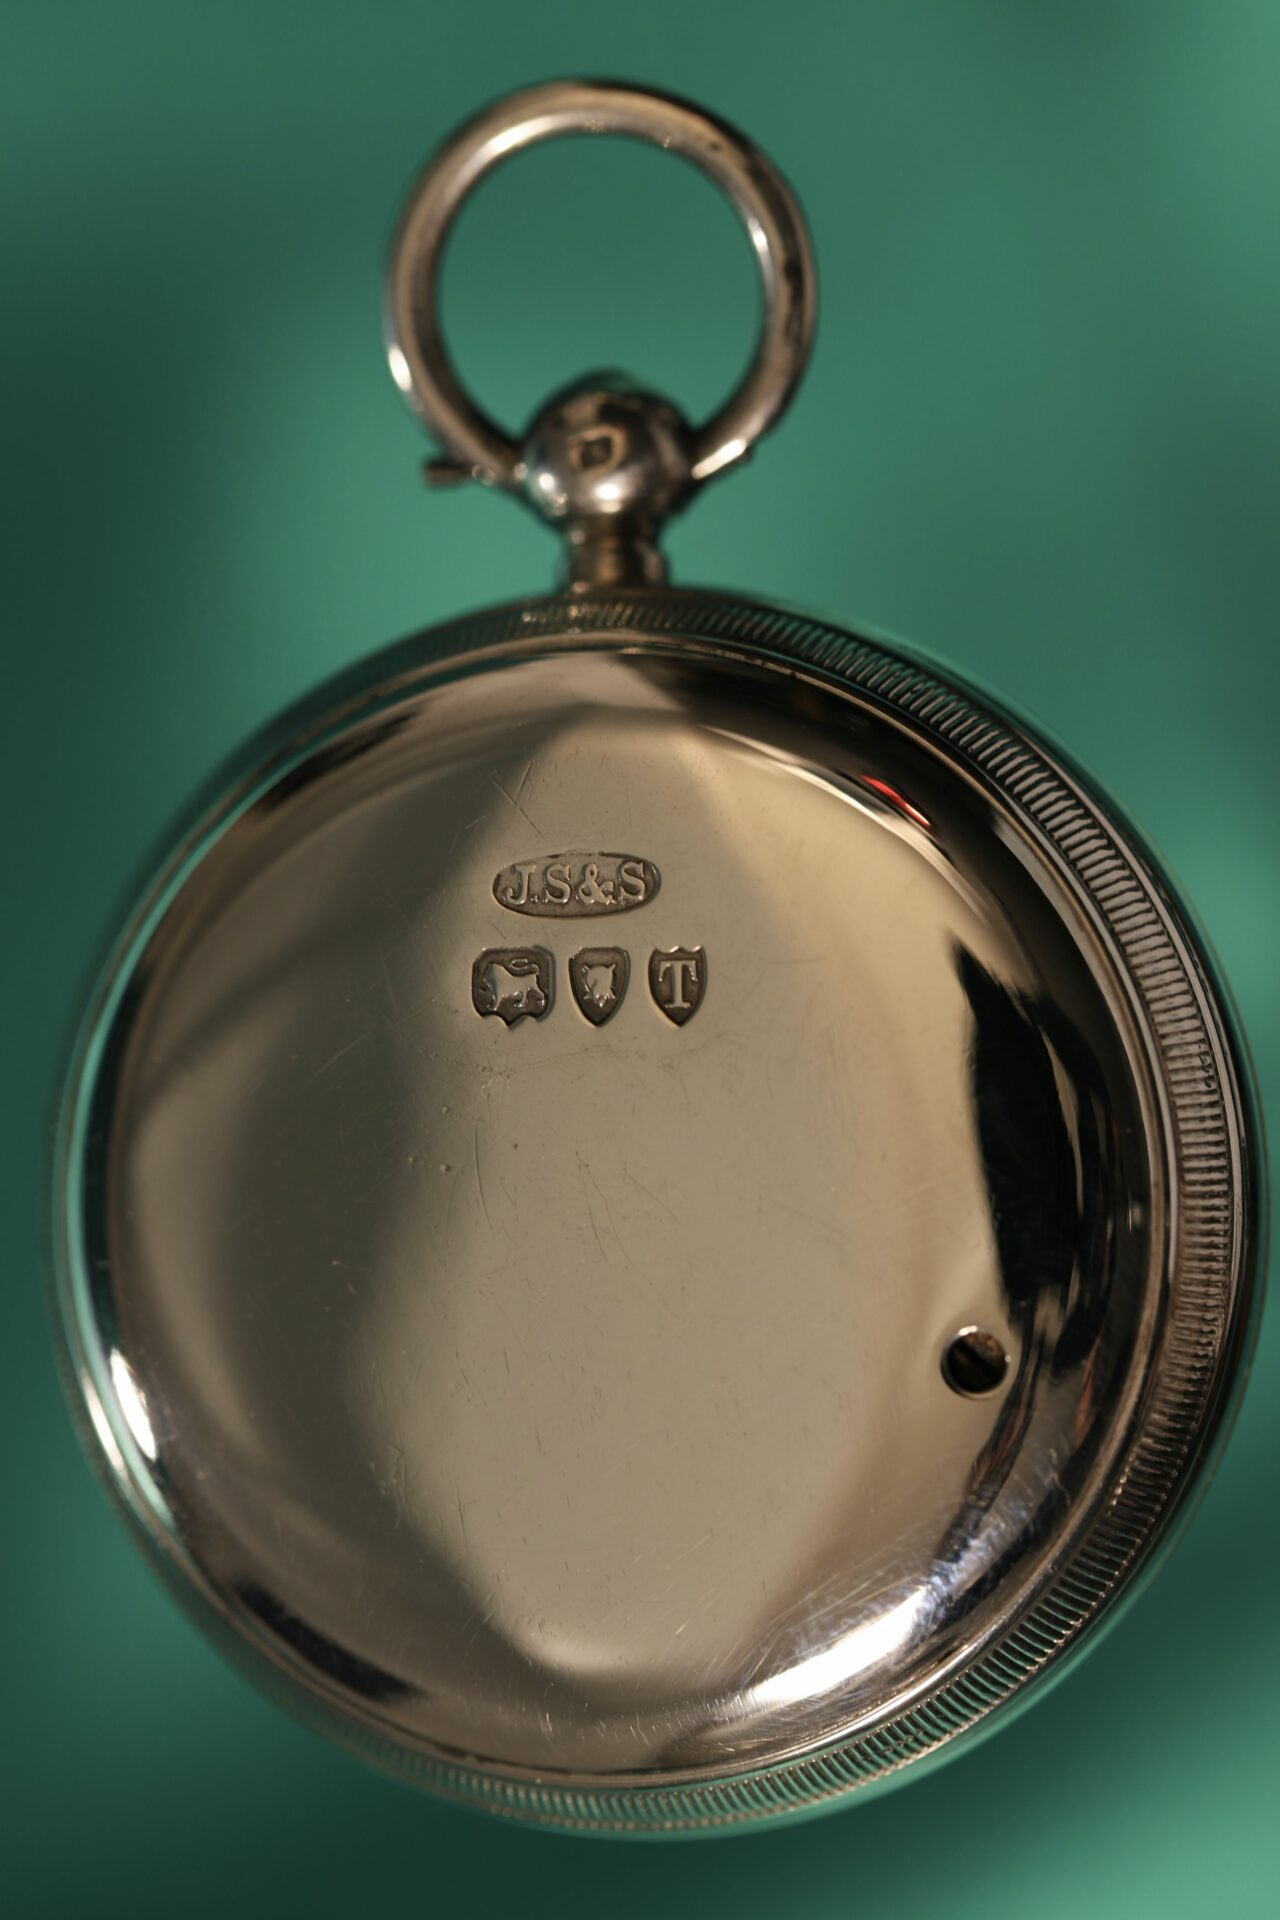 Image of back of pocket barometer from Houghton & Gunn Silver Travel Compendium c1895 showing hallmarks